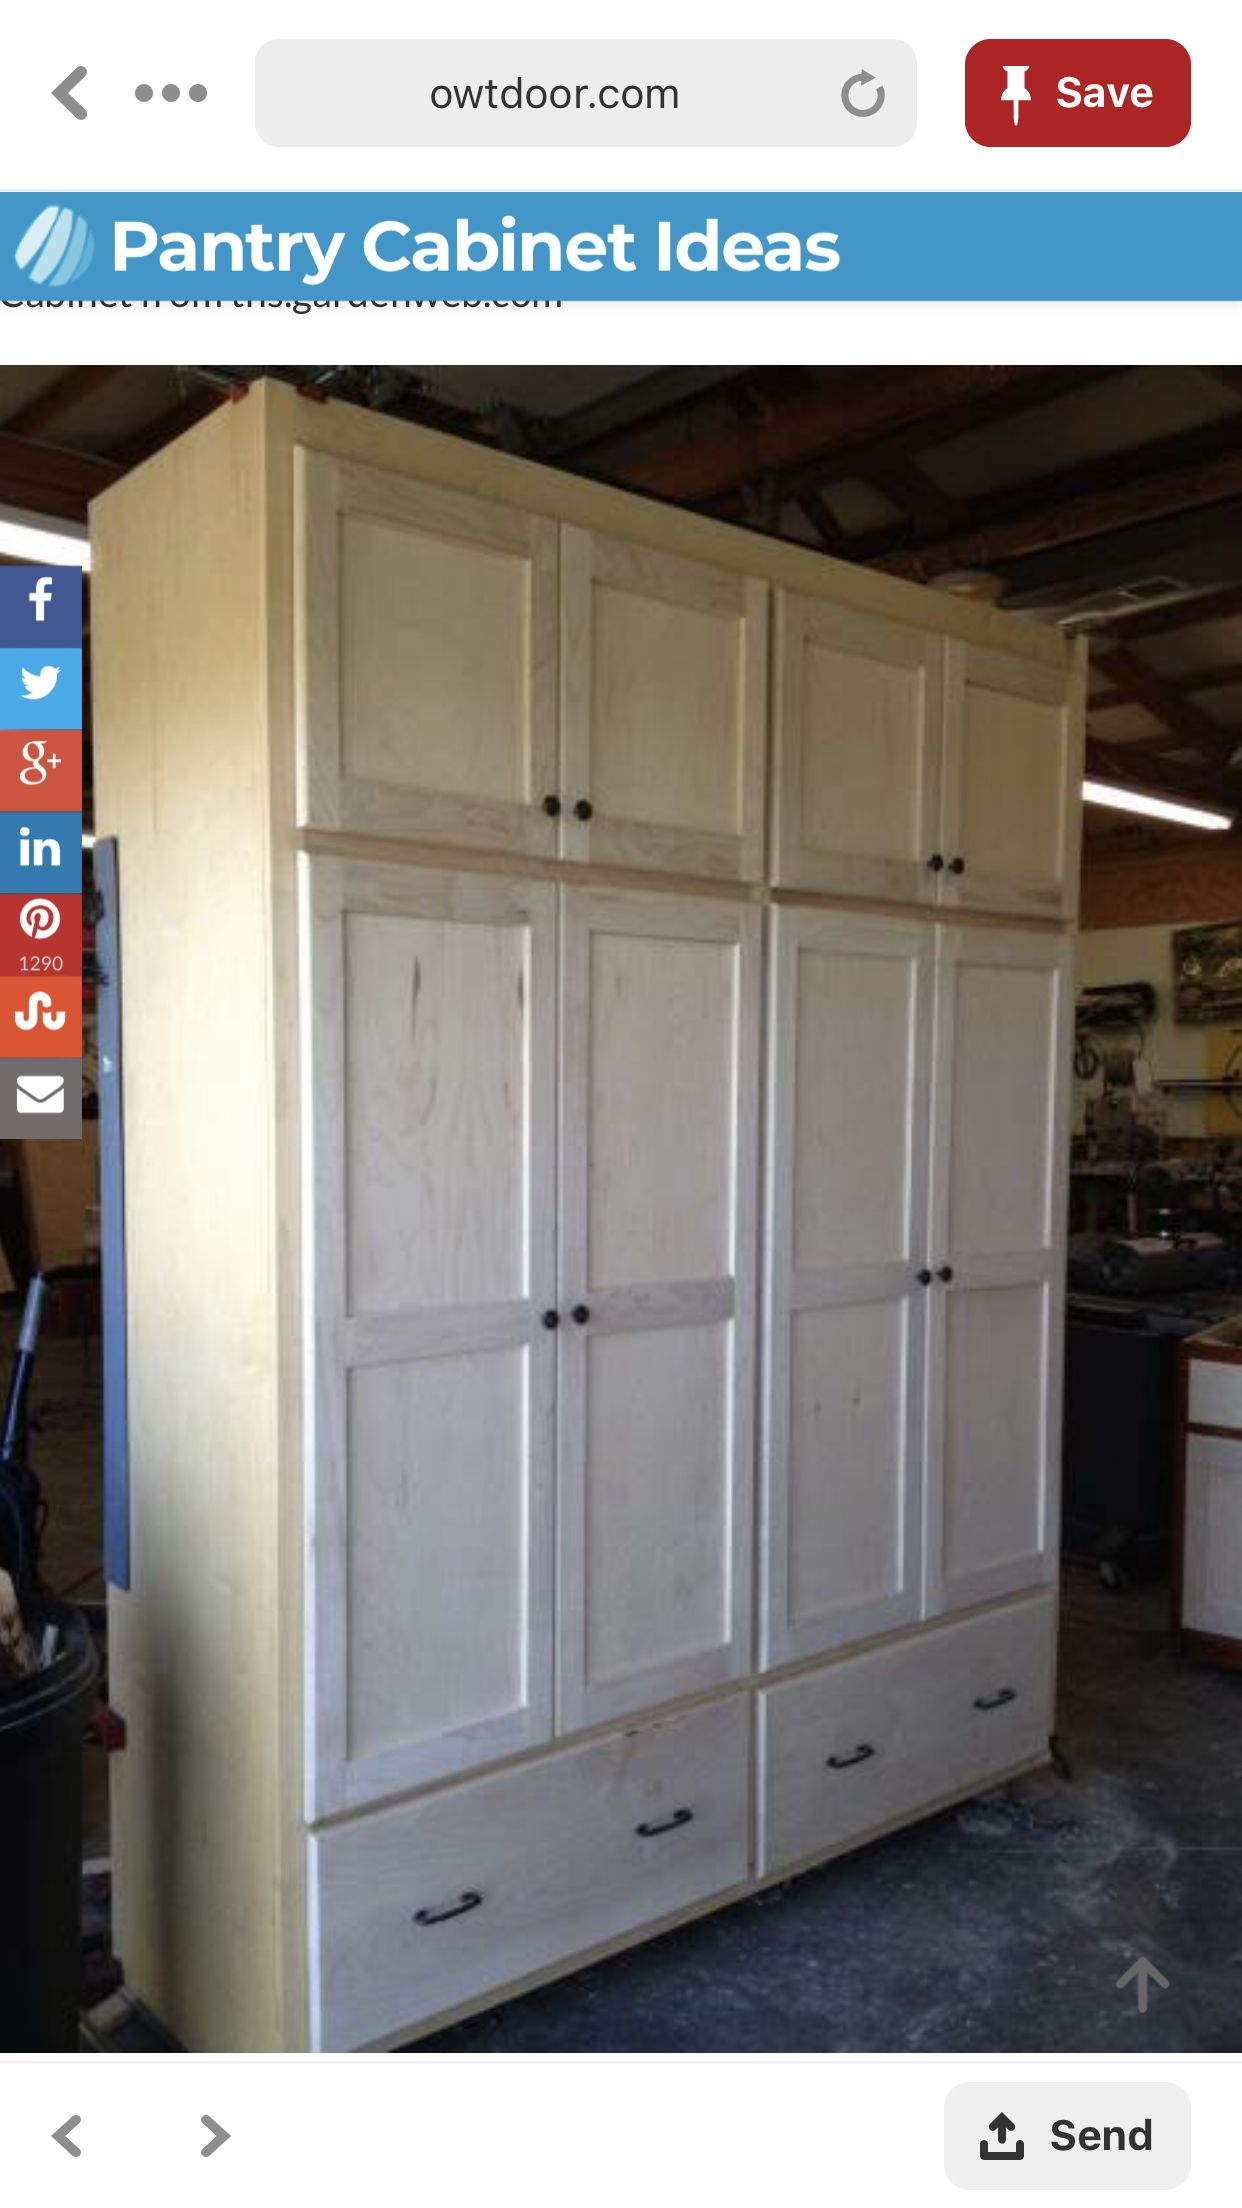 Pin By Nick Keaton On Build This In 2020 Farmhouse Pantry Farmhouse Pantry Cabinets Pantry Cabinet